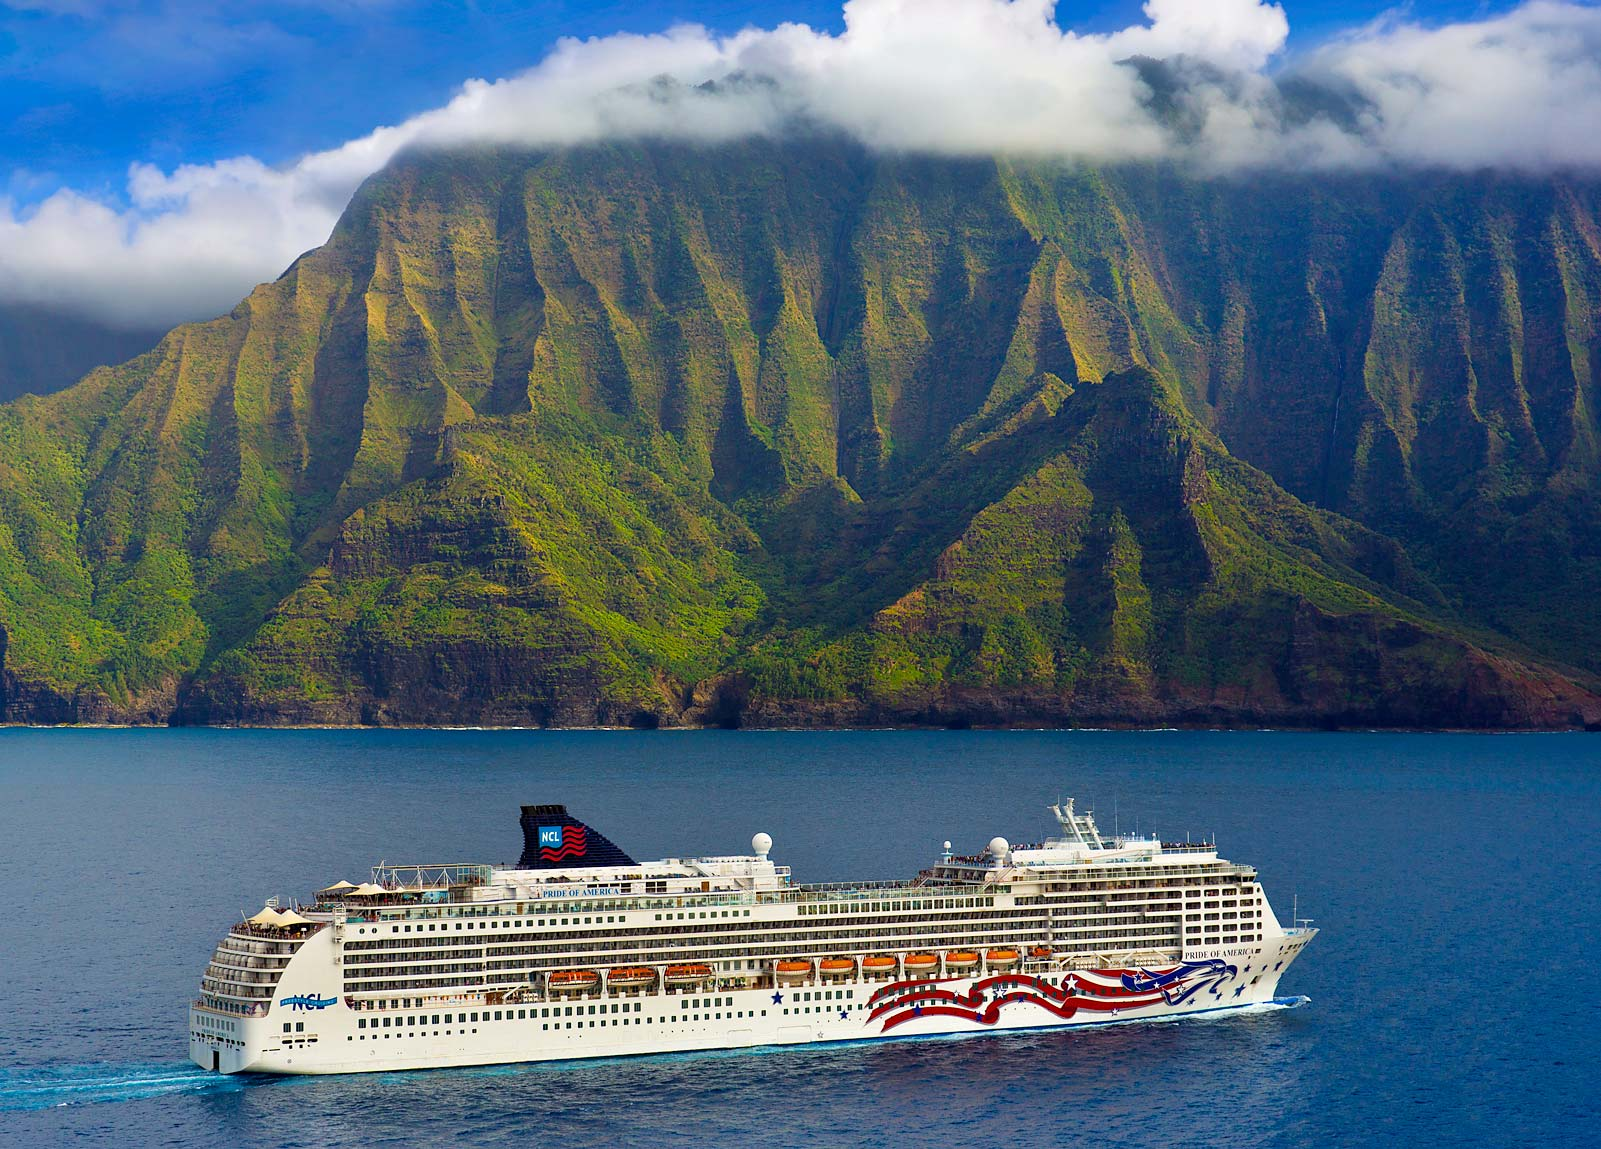 CRUCEROS HAWAII CRUCEROS NCL HAWAII CRUCEROS HAWAI CRUCEROS PACIFICO PRIDE OF AMERICA CRUCEROS HAWAII CRUCEROS ISLAS DEL PACIFICO CRUCEROS ESTADOS UNIDOS CRUCEROS USA CRUCEROS EEUU CRUCEROS ISLAS HAWAI CRUCEROS ISLAS HAWAII CRUCEROS JAWAI CRUCEROS HAUAI CRUCEROS JAUAI CRUCEROS PACIFICO NCL NORWEGIAN CRUISE LINE CRUISES HAWAII NCL CRUISES